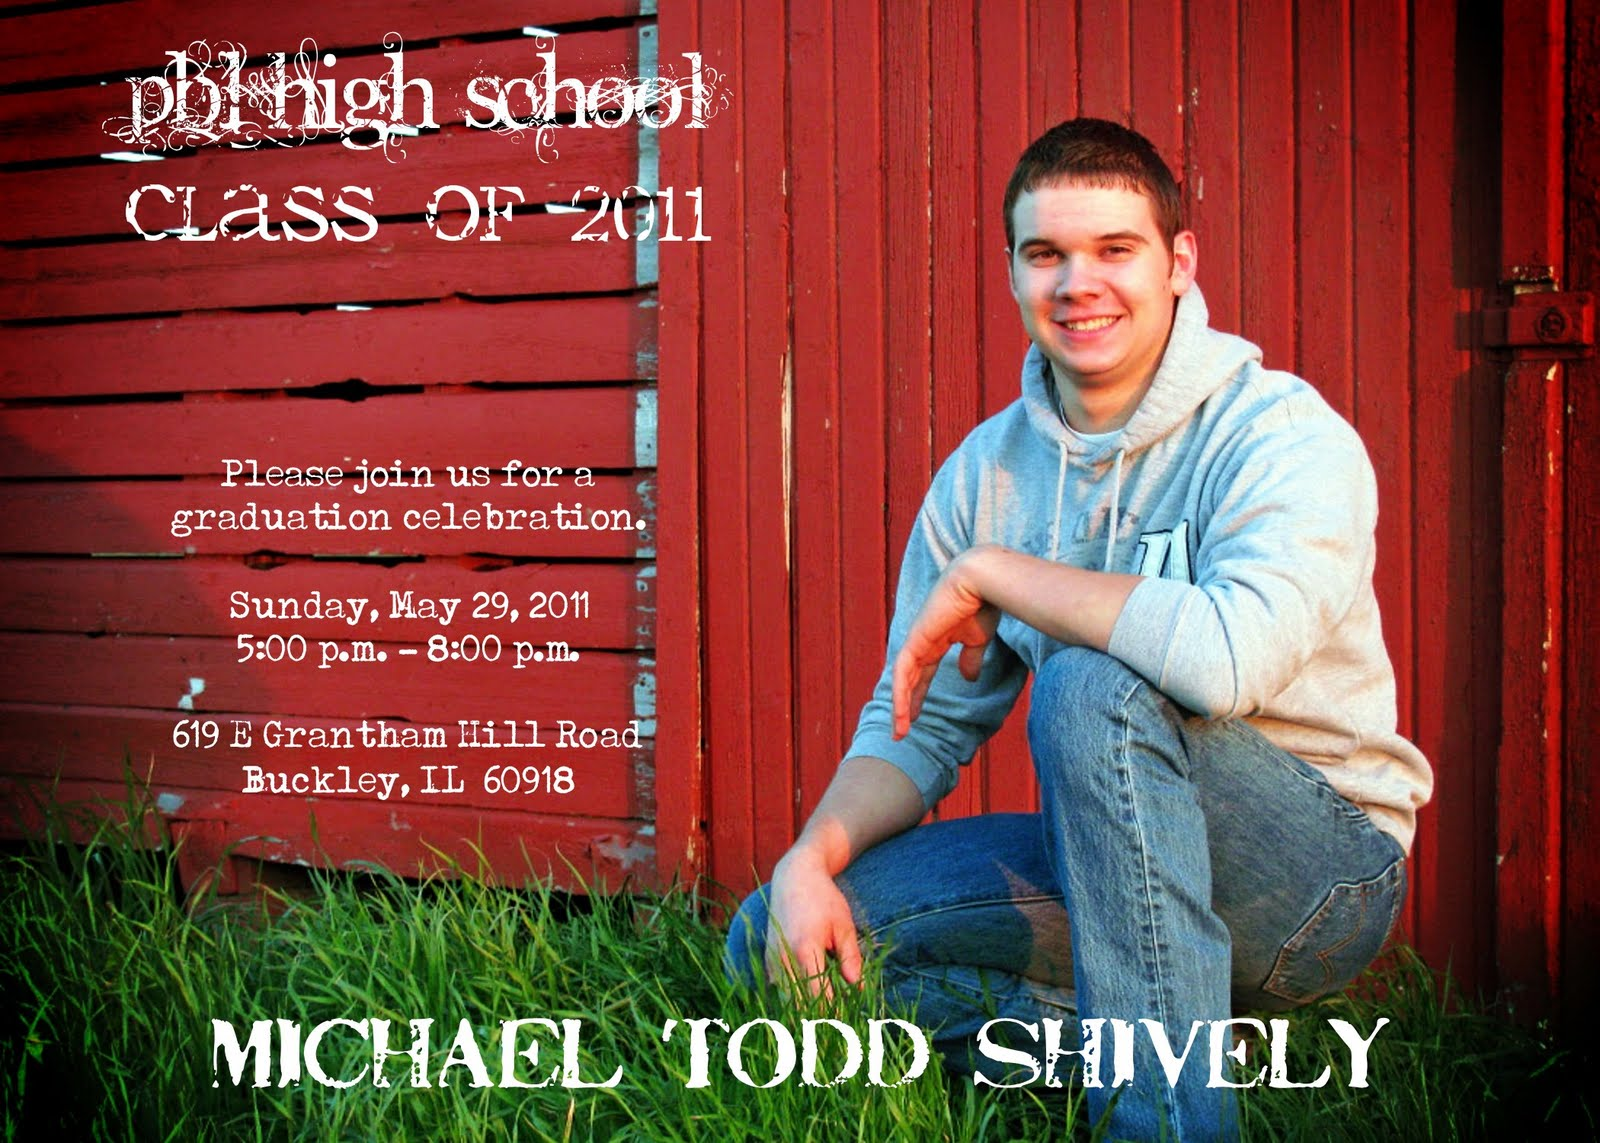 Bear River Photo Greetings: Graduation Announcements are Flying Out ...